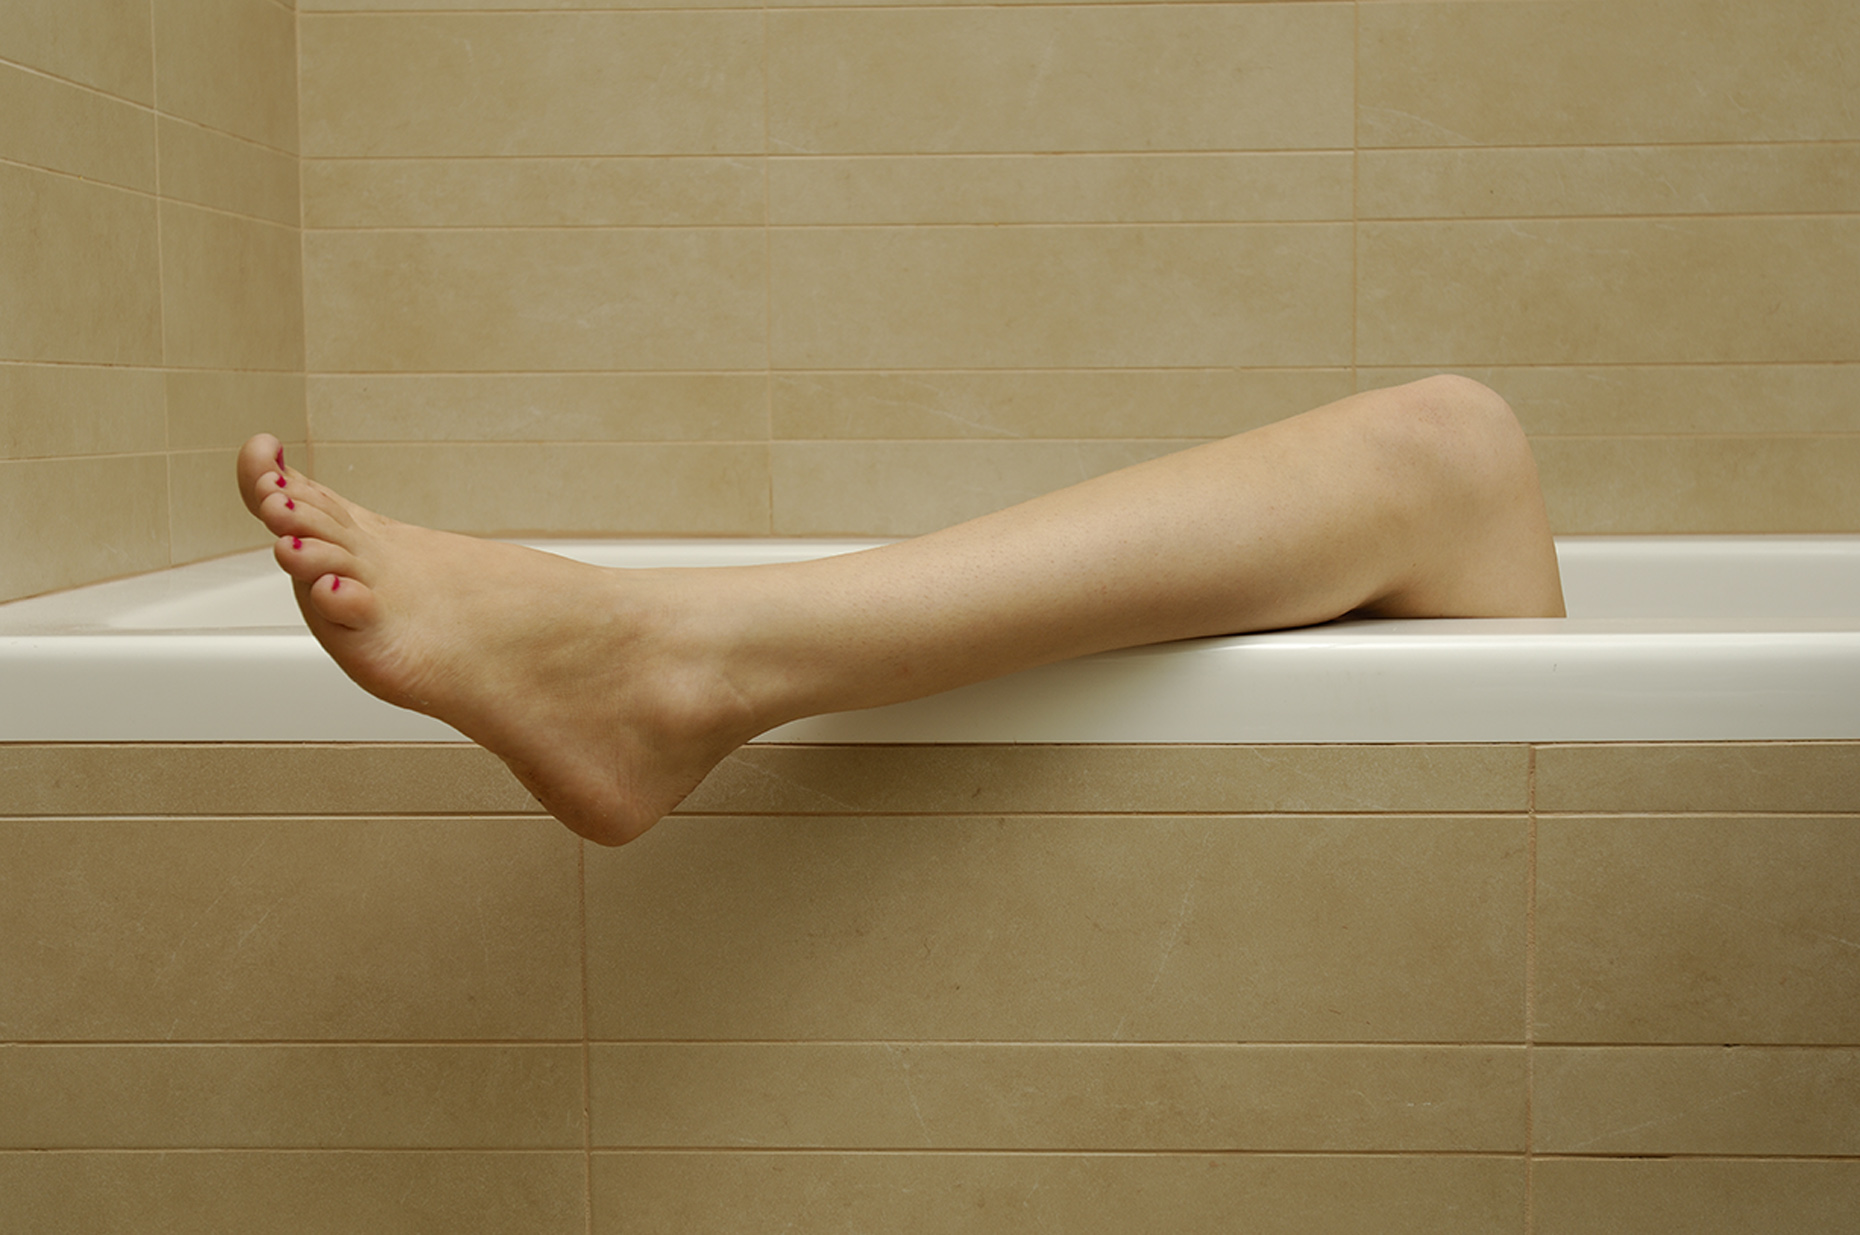 Bathtub leg